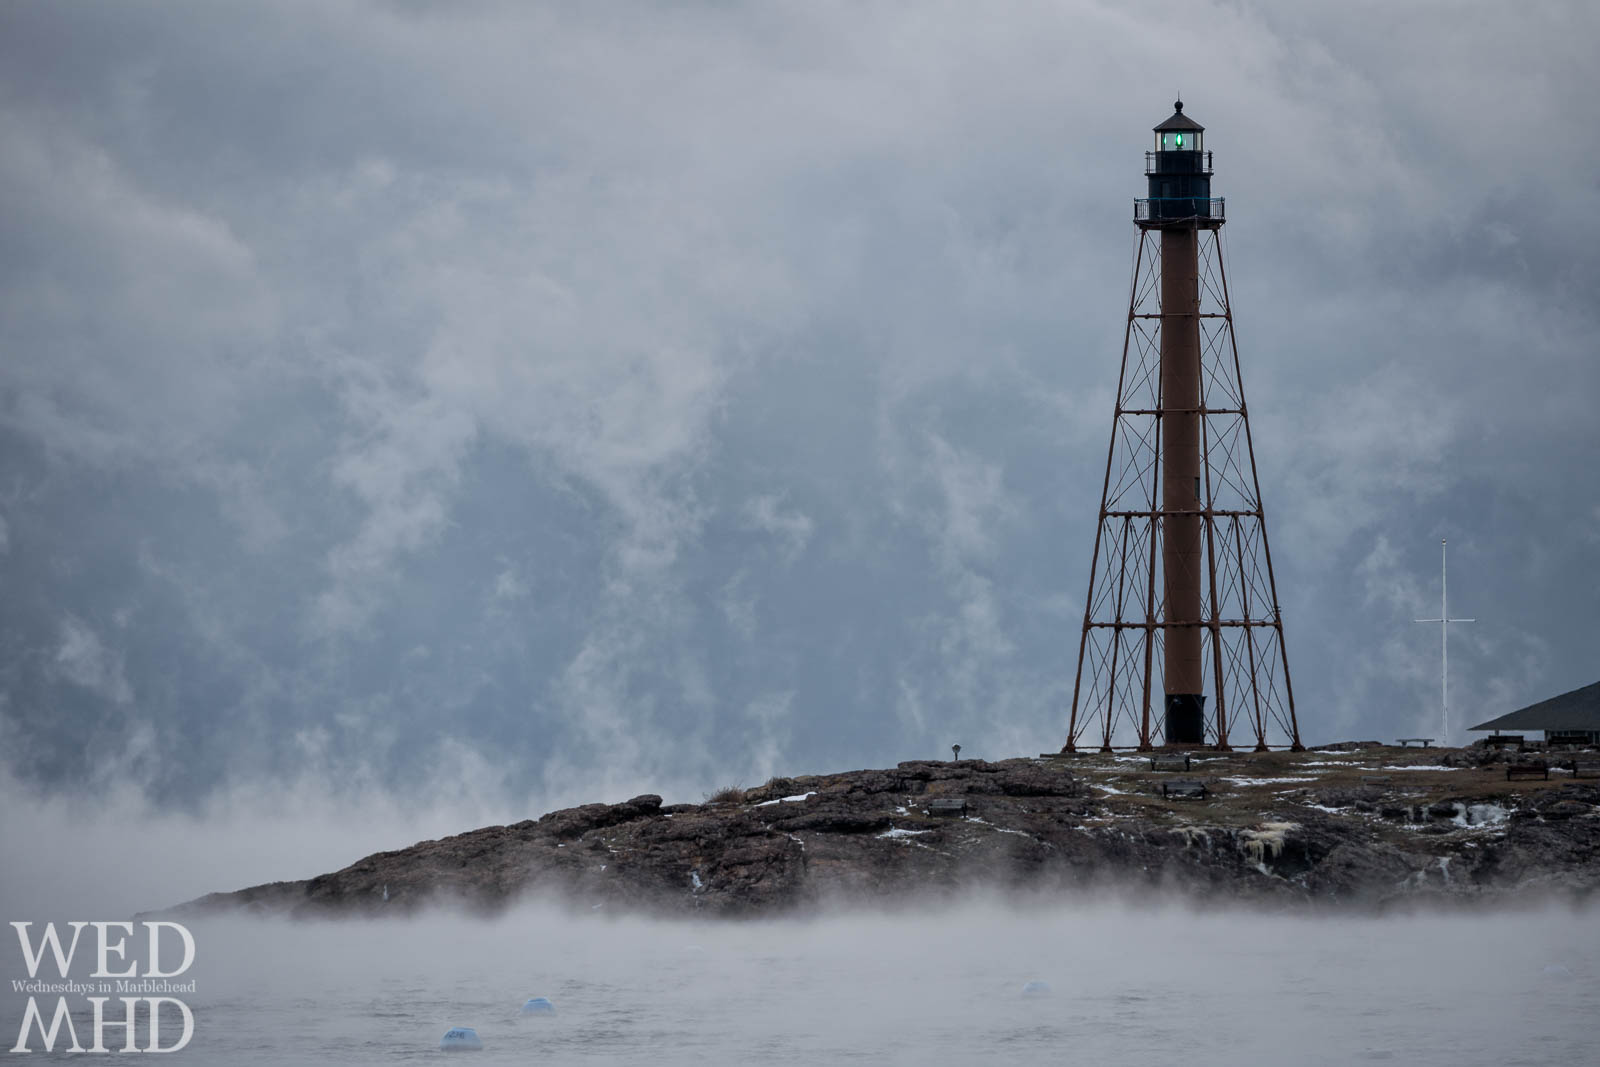 Marblehead Light shines its green beacon in the smoke on an arctic morning